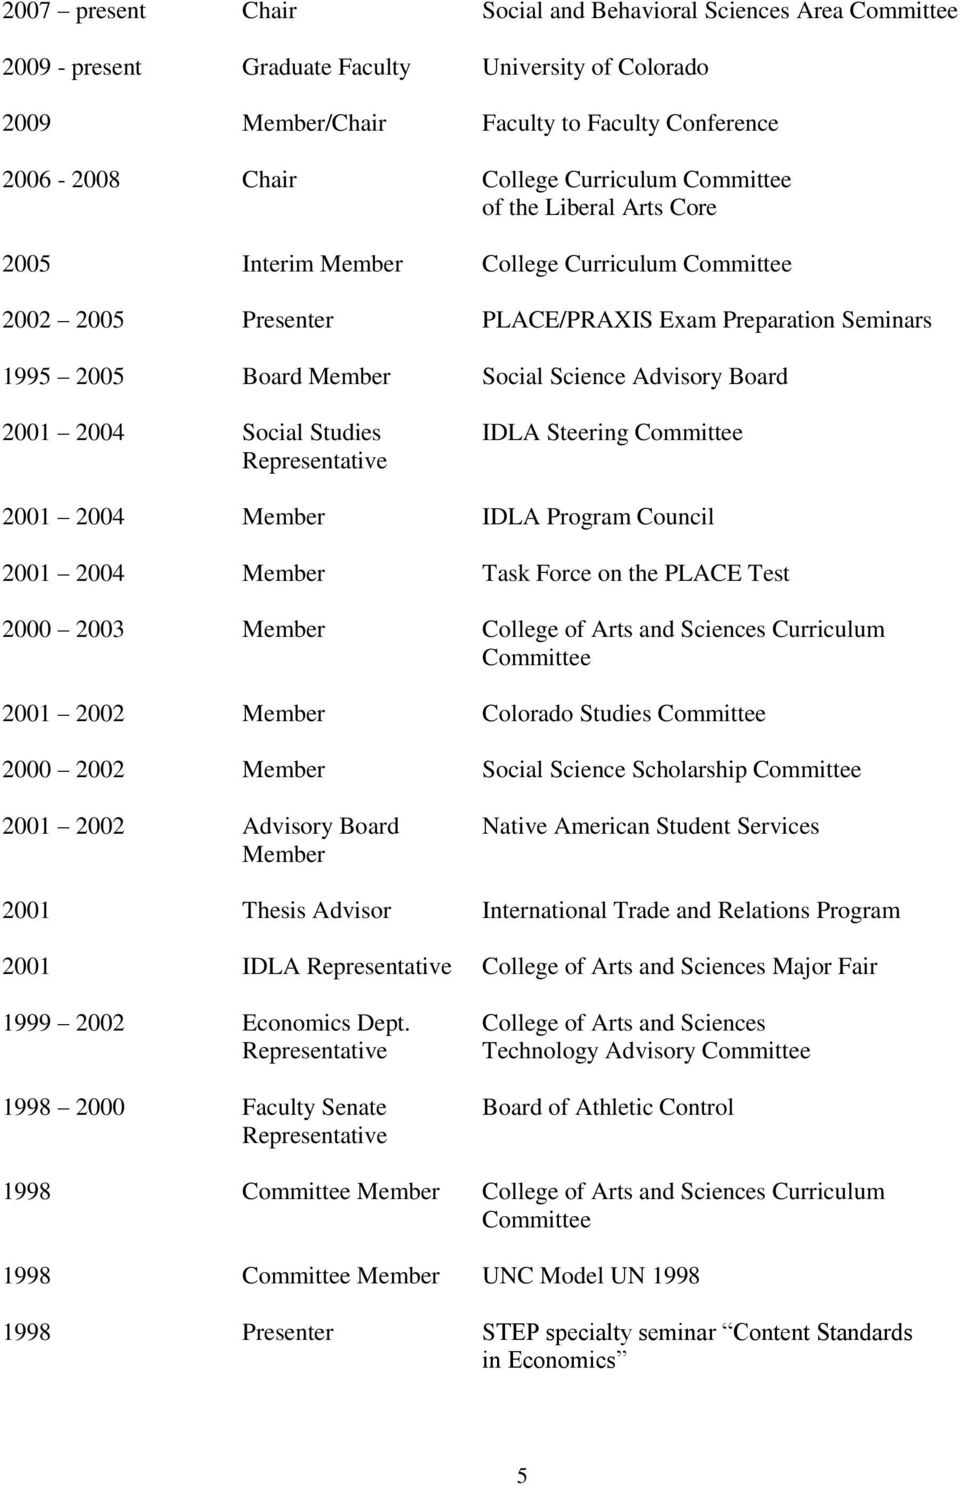 Advisory Board 2001 2004 Social Studies IDLA Steering Committee Representative 2001 2004 Member IDLA Program Council 2001 2004 Member Task Force on the PLACE Test 2000 2003 Member College of Arts and